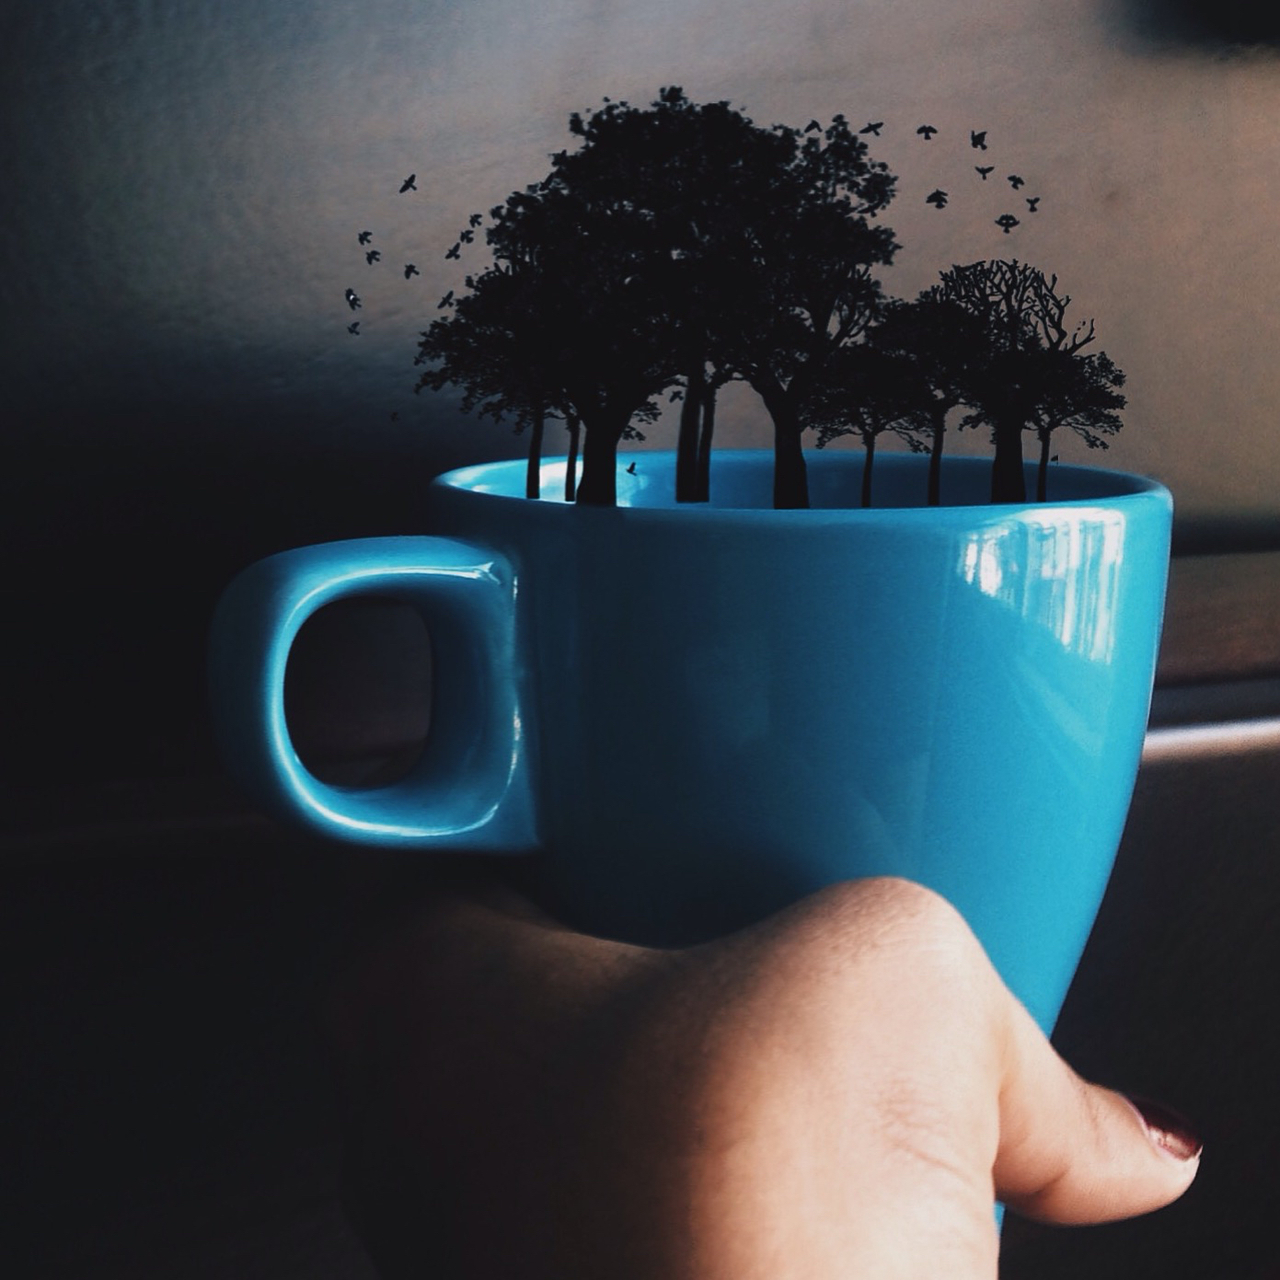 art, artsy, blue, coffee, dark, edit, edits, surreal, templates, tumblr, tumblredit